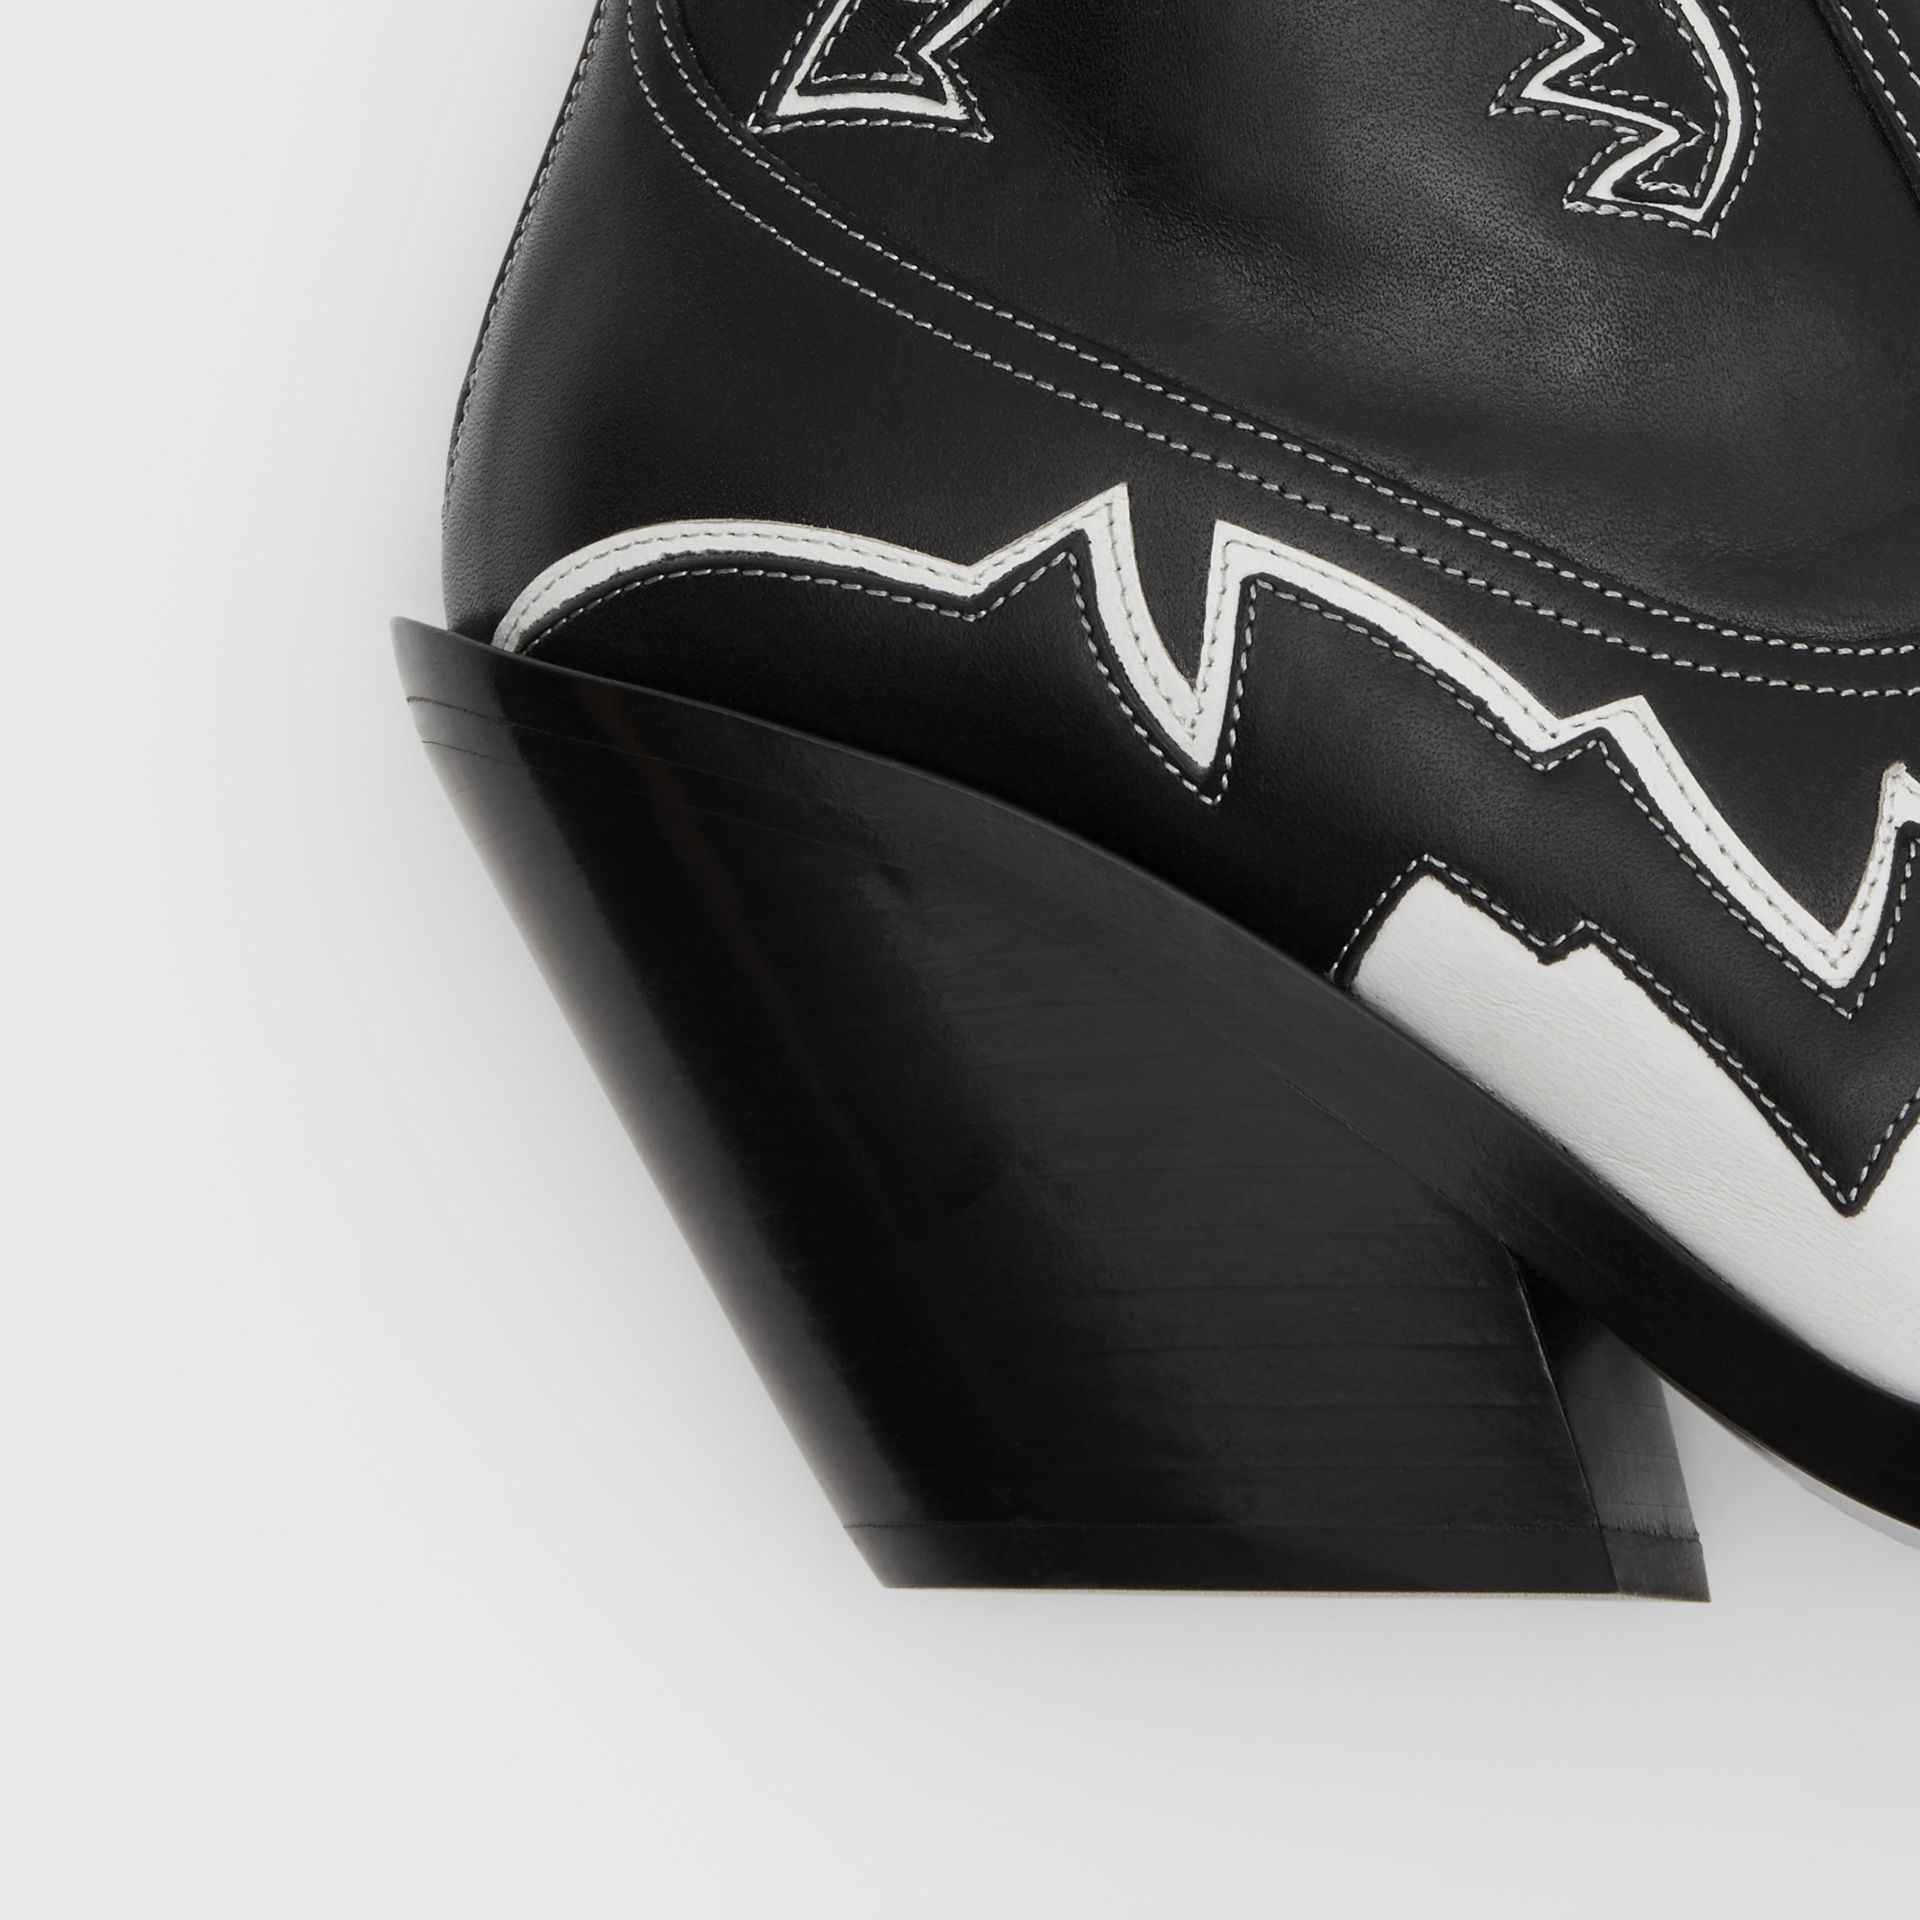 Topstitch Appliqué Leather Boots in Black/white - Women | Burberry - gallery image 6